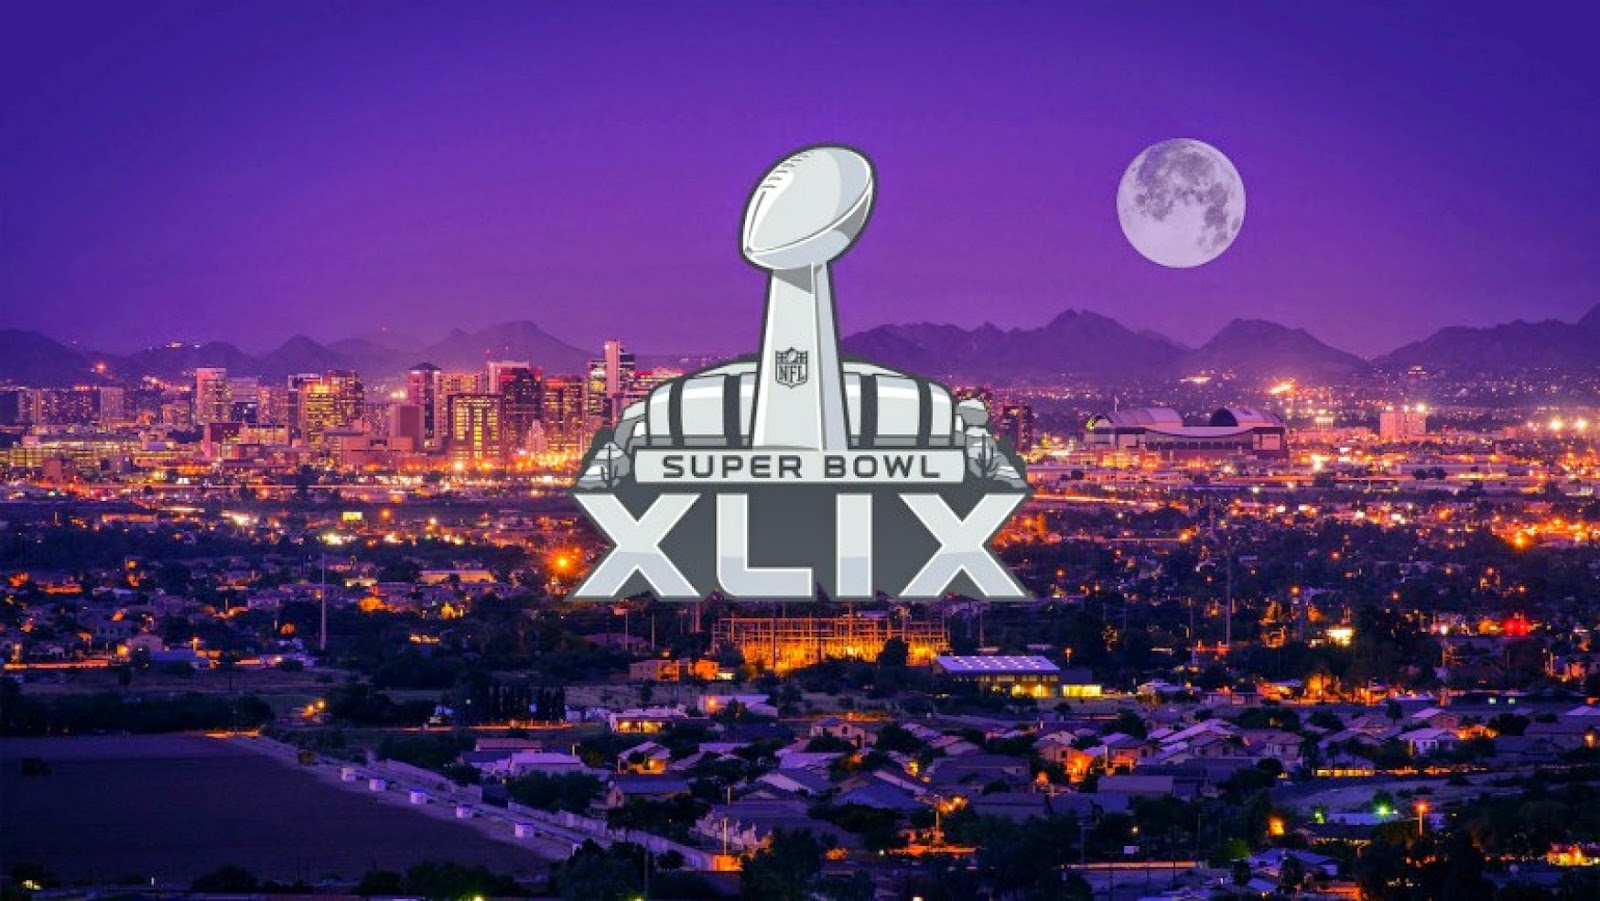 La increible Super Bowl 2015